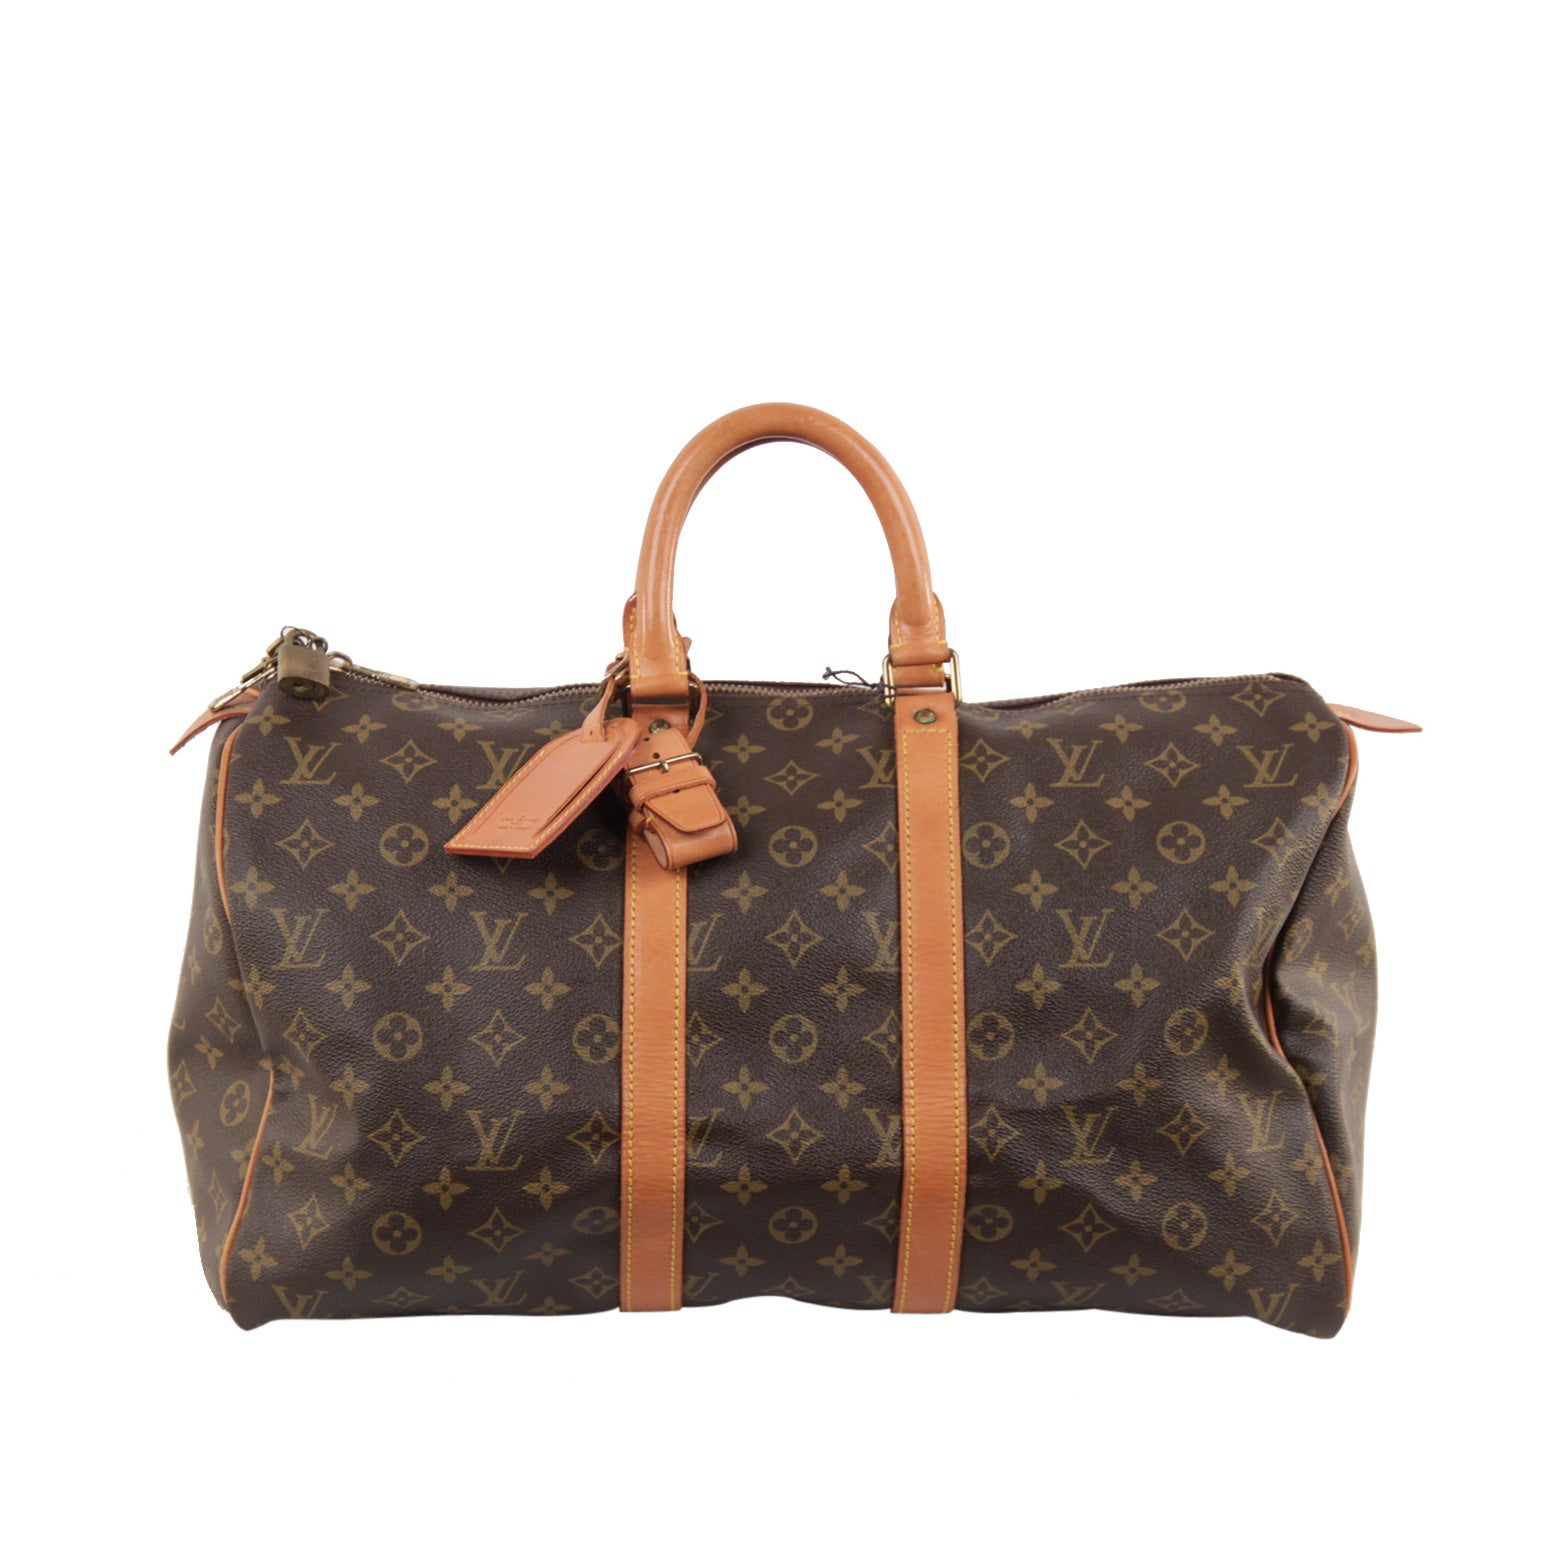 d8934f2229d0 LOUIS VUITTON Vintage Brown Monogram Canvas KEEPALL 45 Duffle Bag TRAVEL at  1stdibs